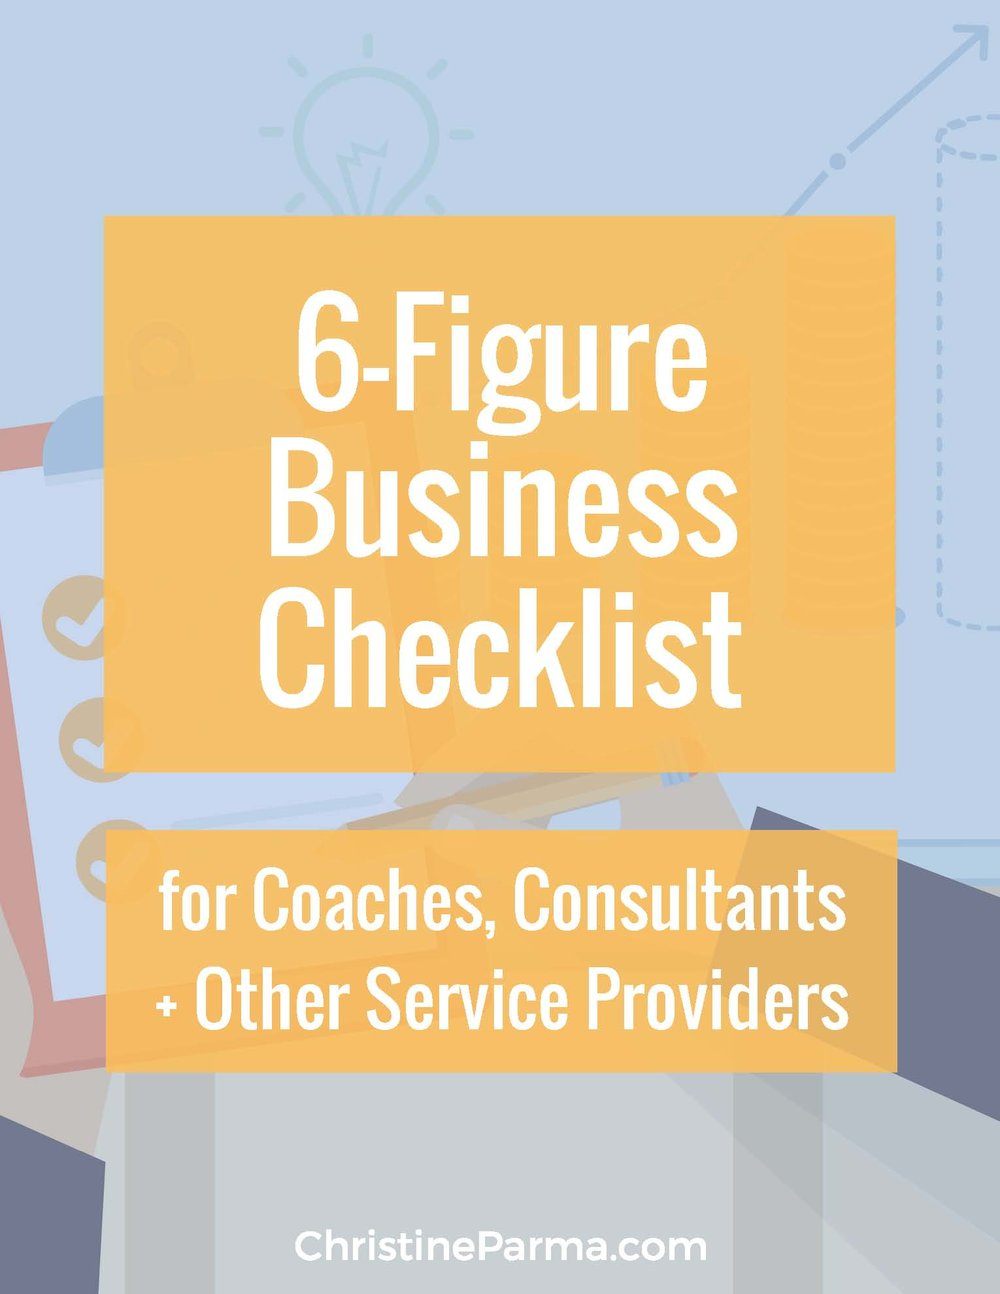 Learn what you need to be doing to build a 6-figure service-based business... all laid out in this easy-to-follow checklist. Click the image above to download your copy!